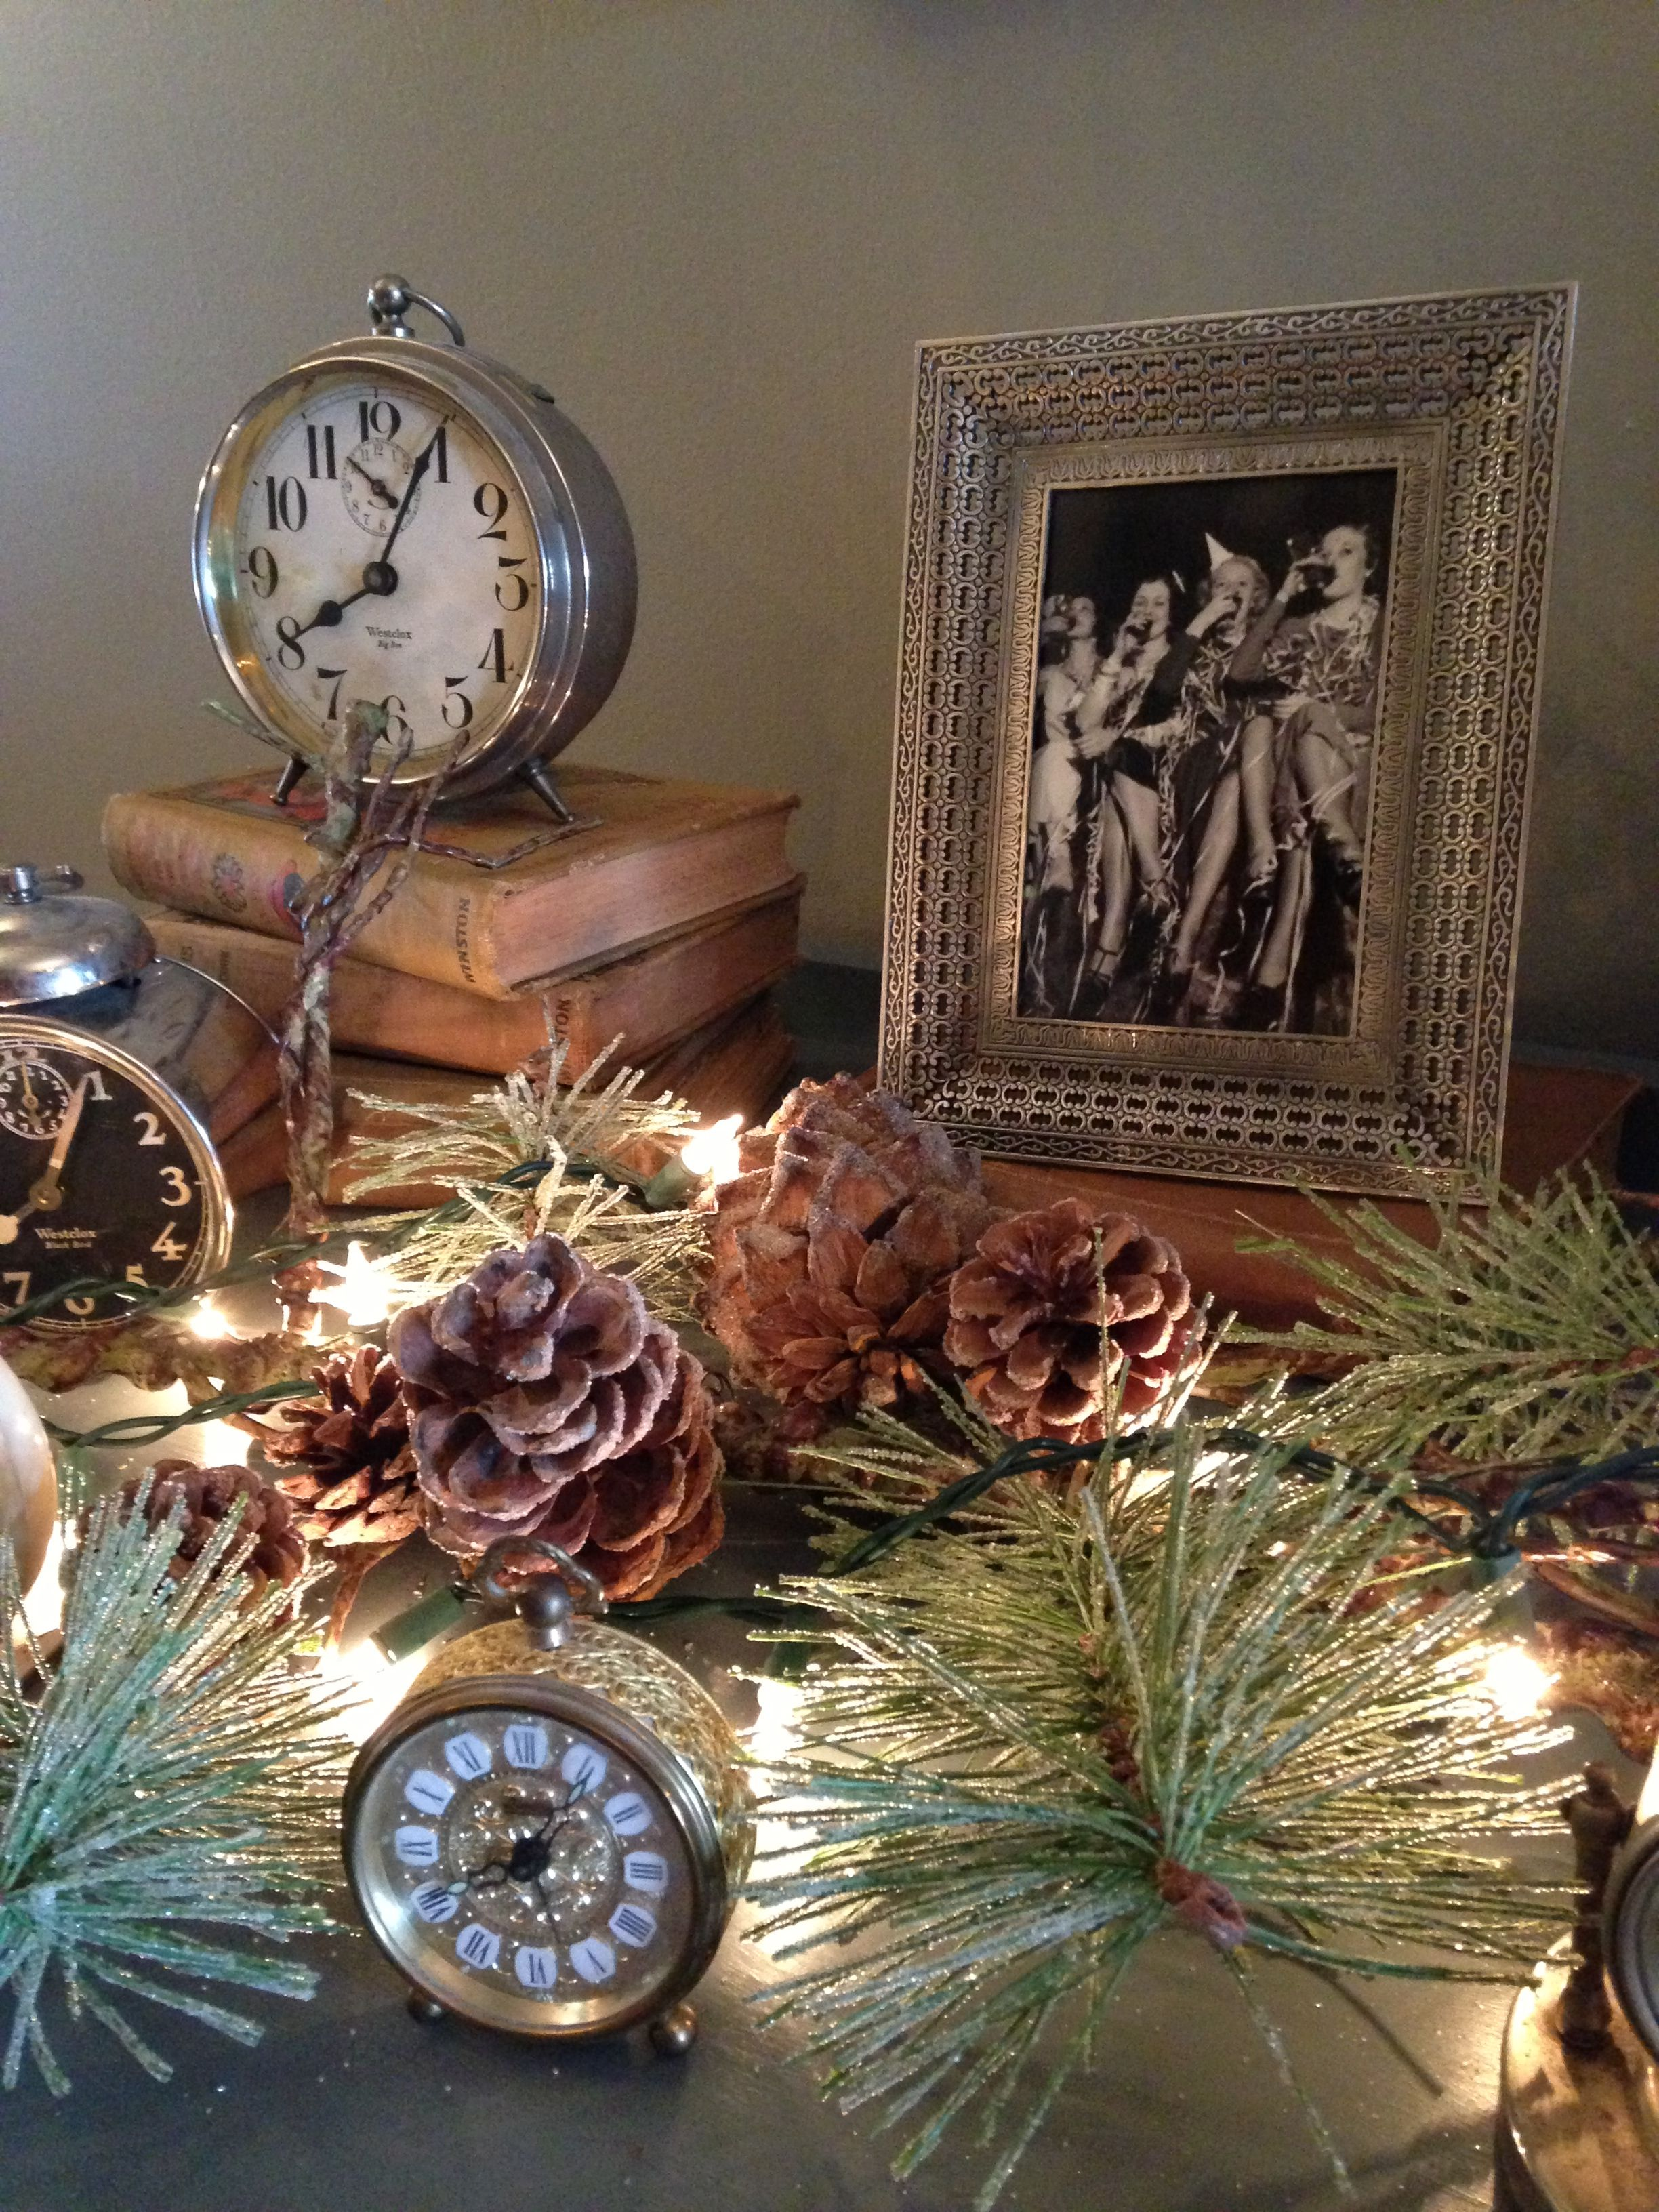 New Years Eve décor. Better start scrounging up old clocks